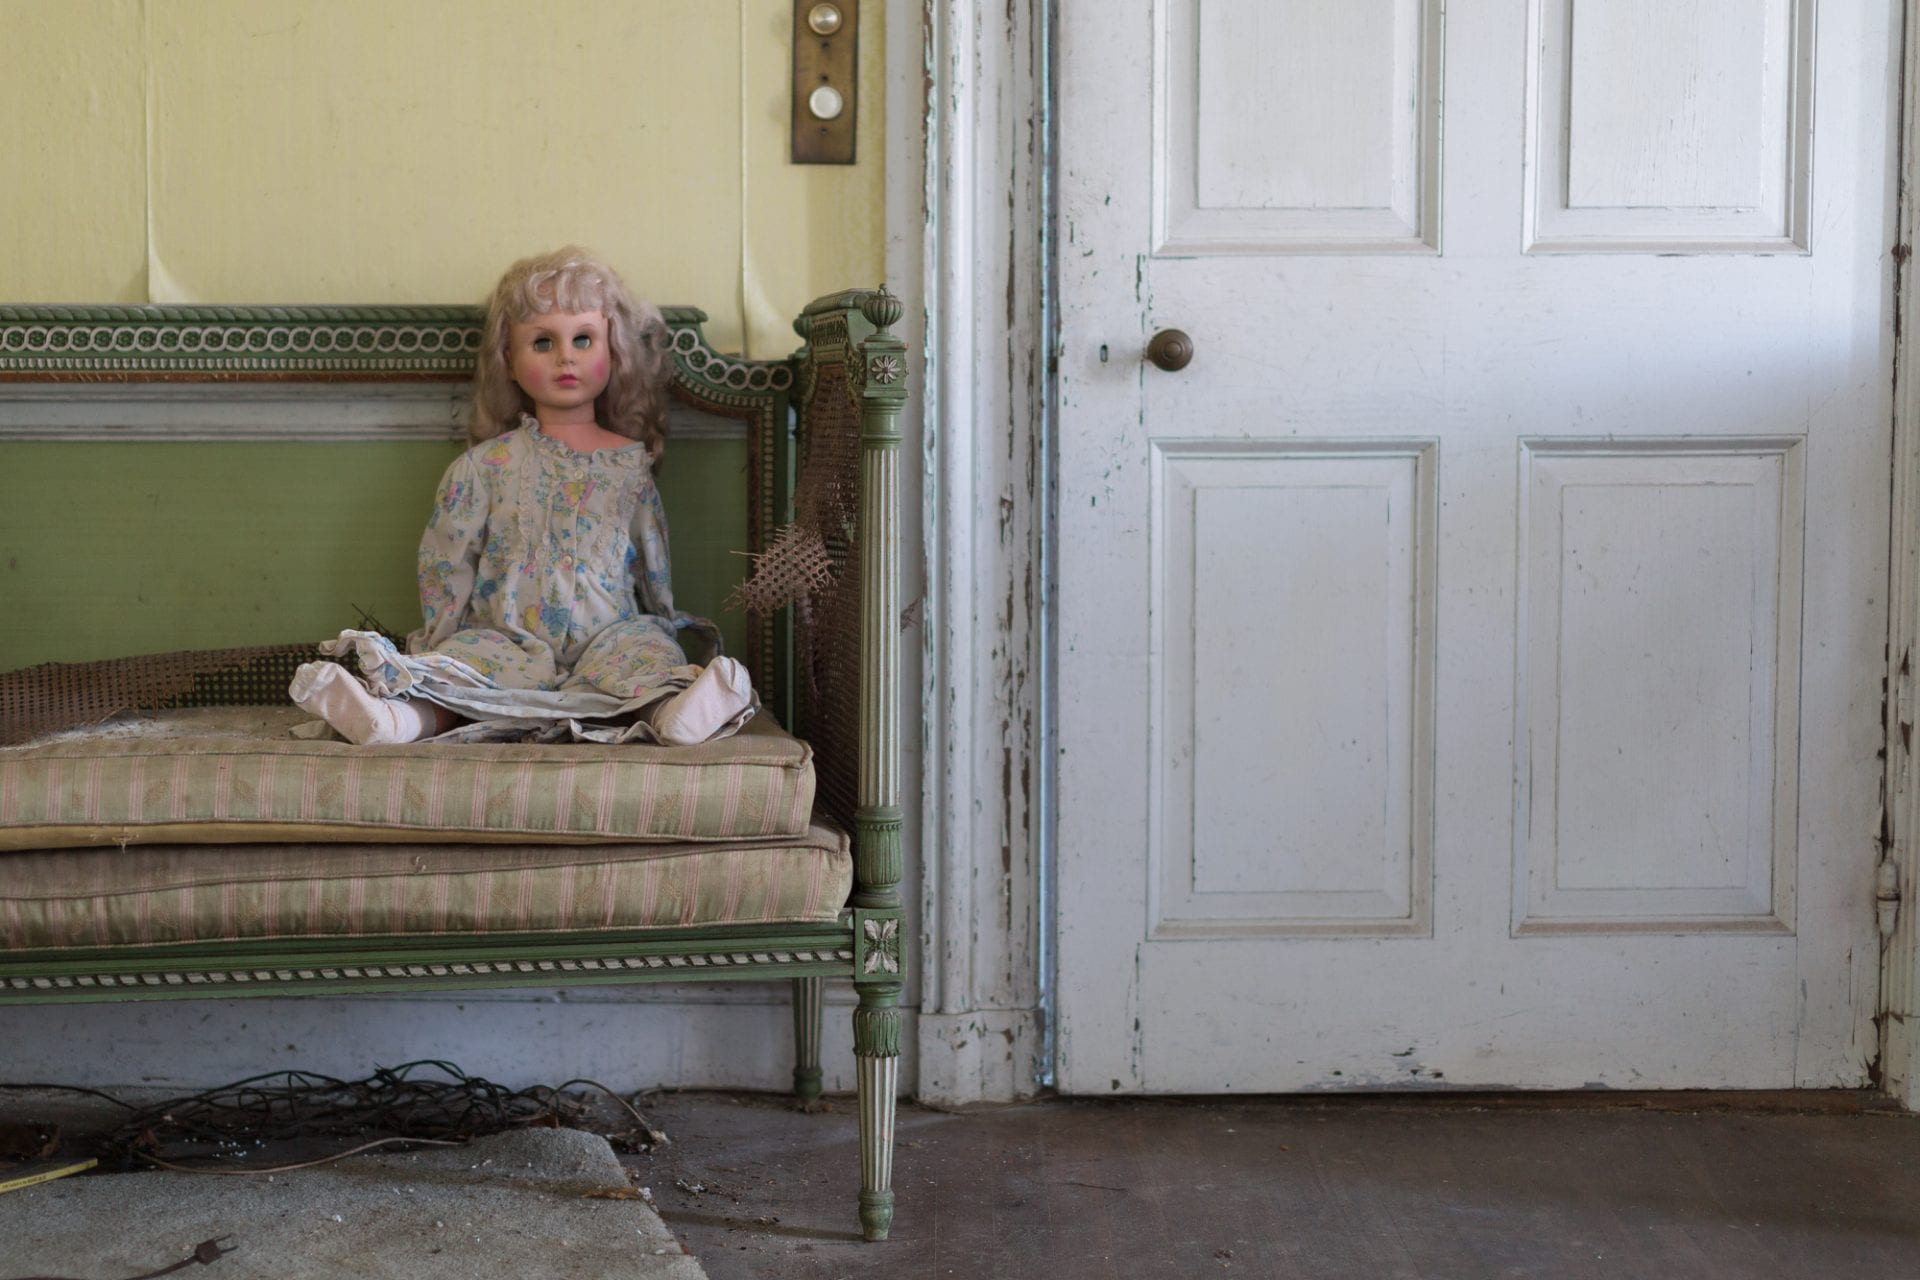 57-room-mansion-New-York-City-doll